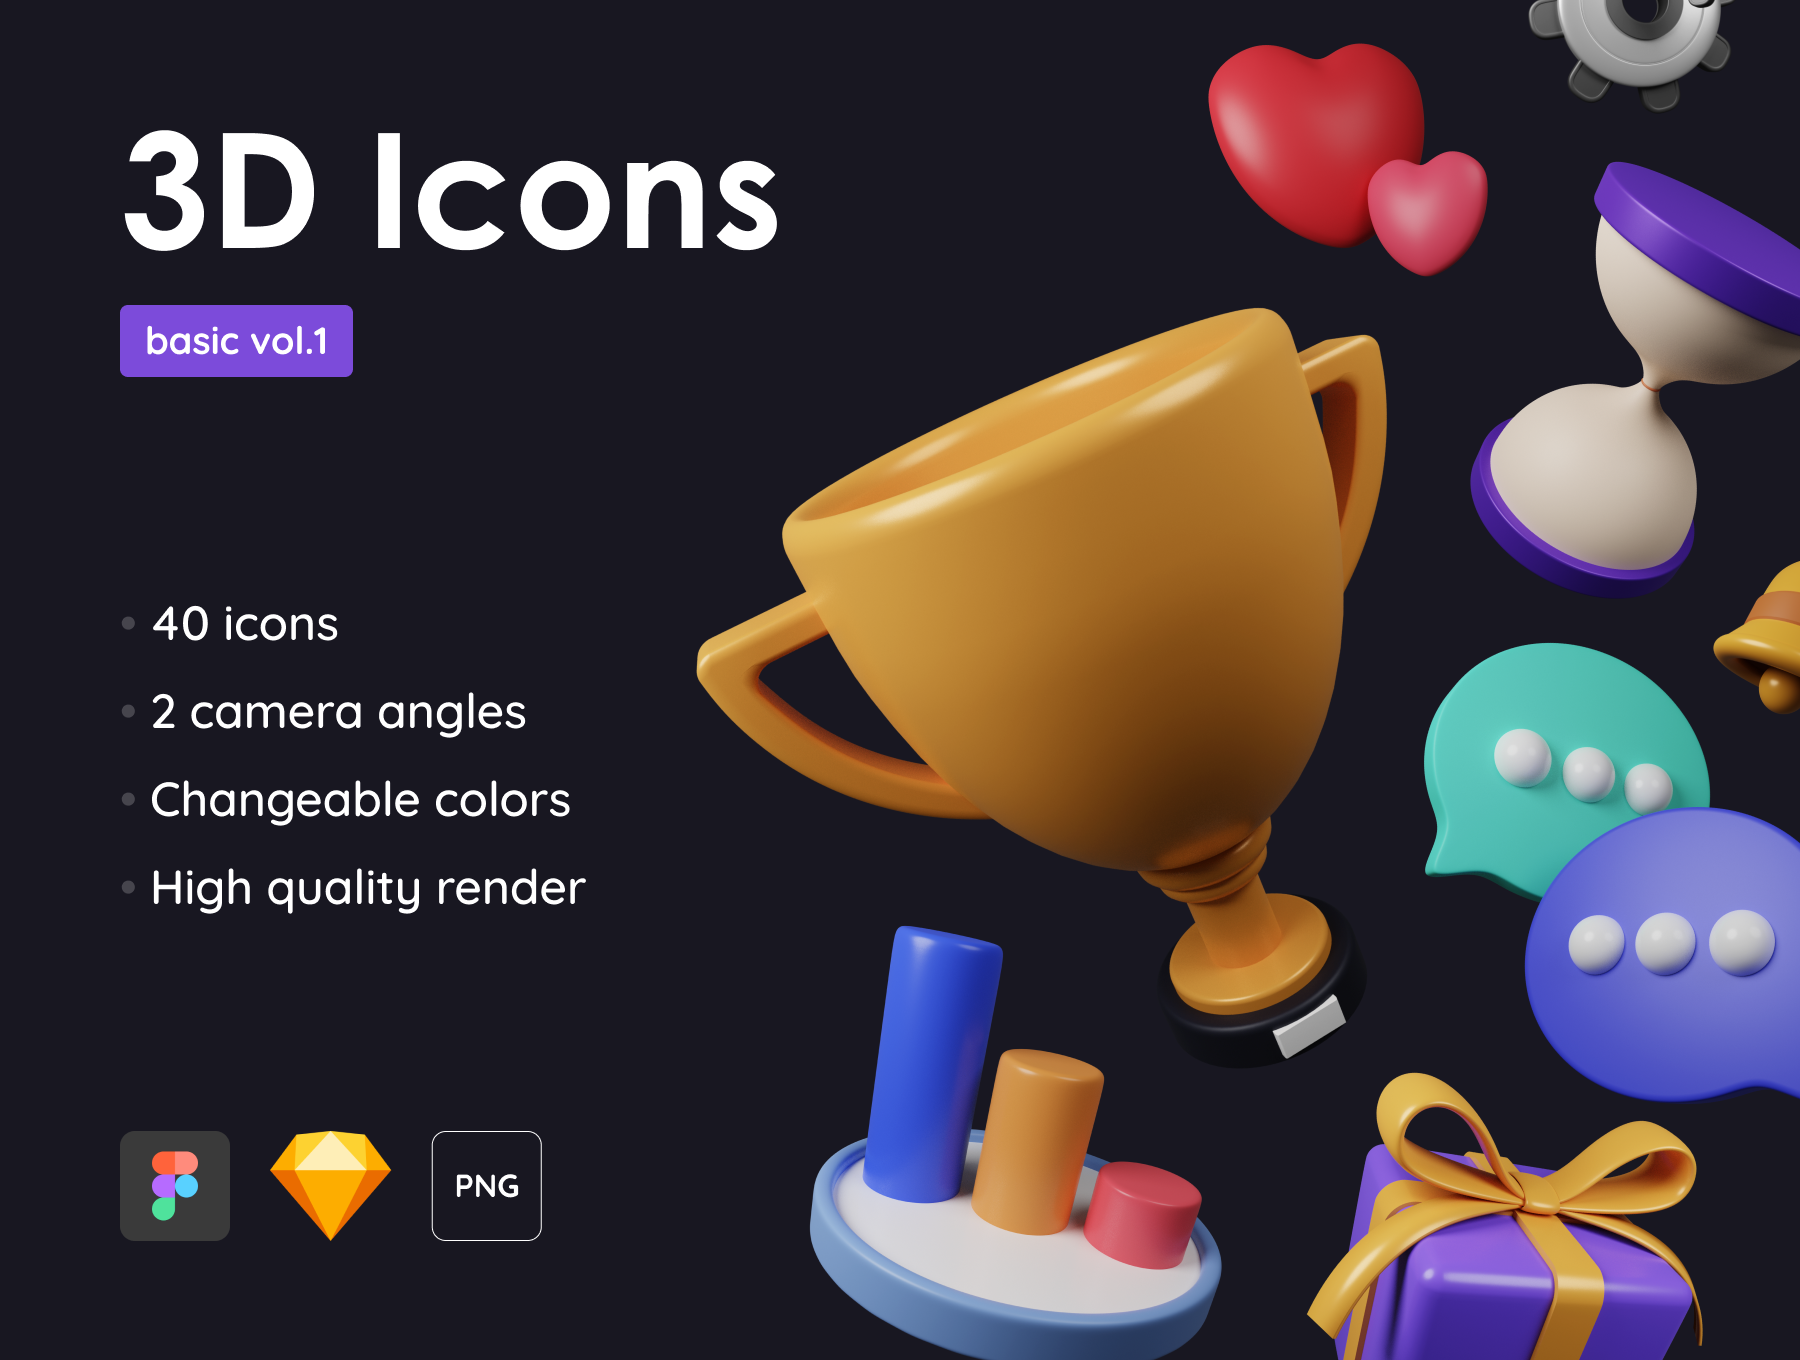 [VIP] Basic Pack - Customizable 3D Icons